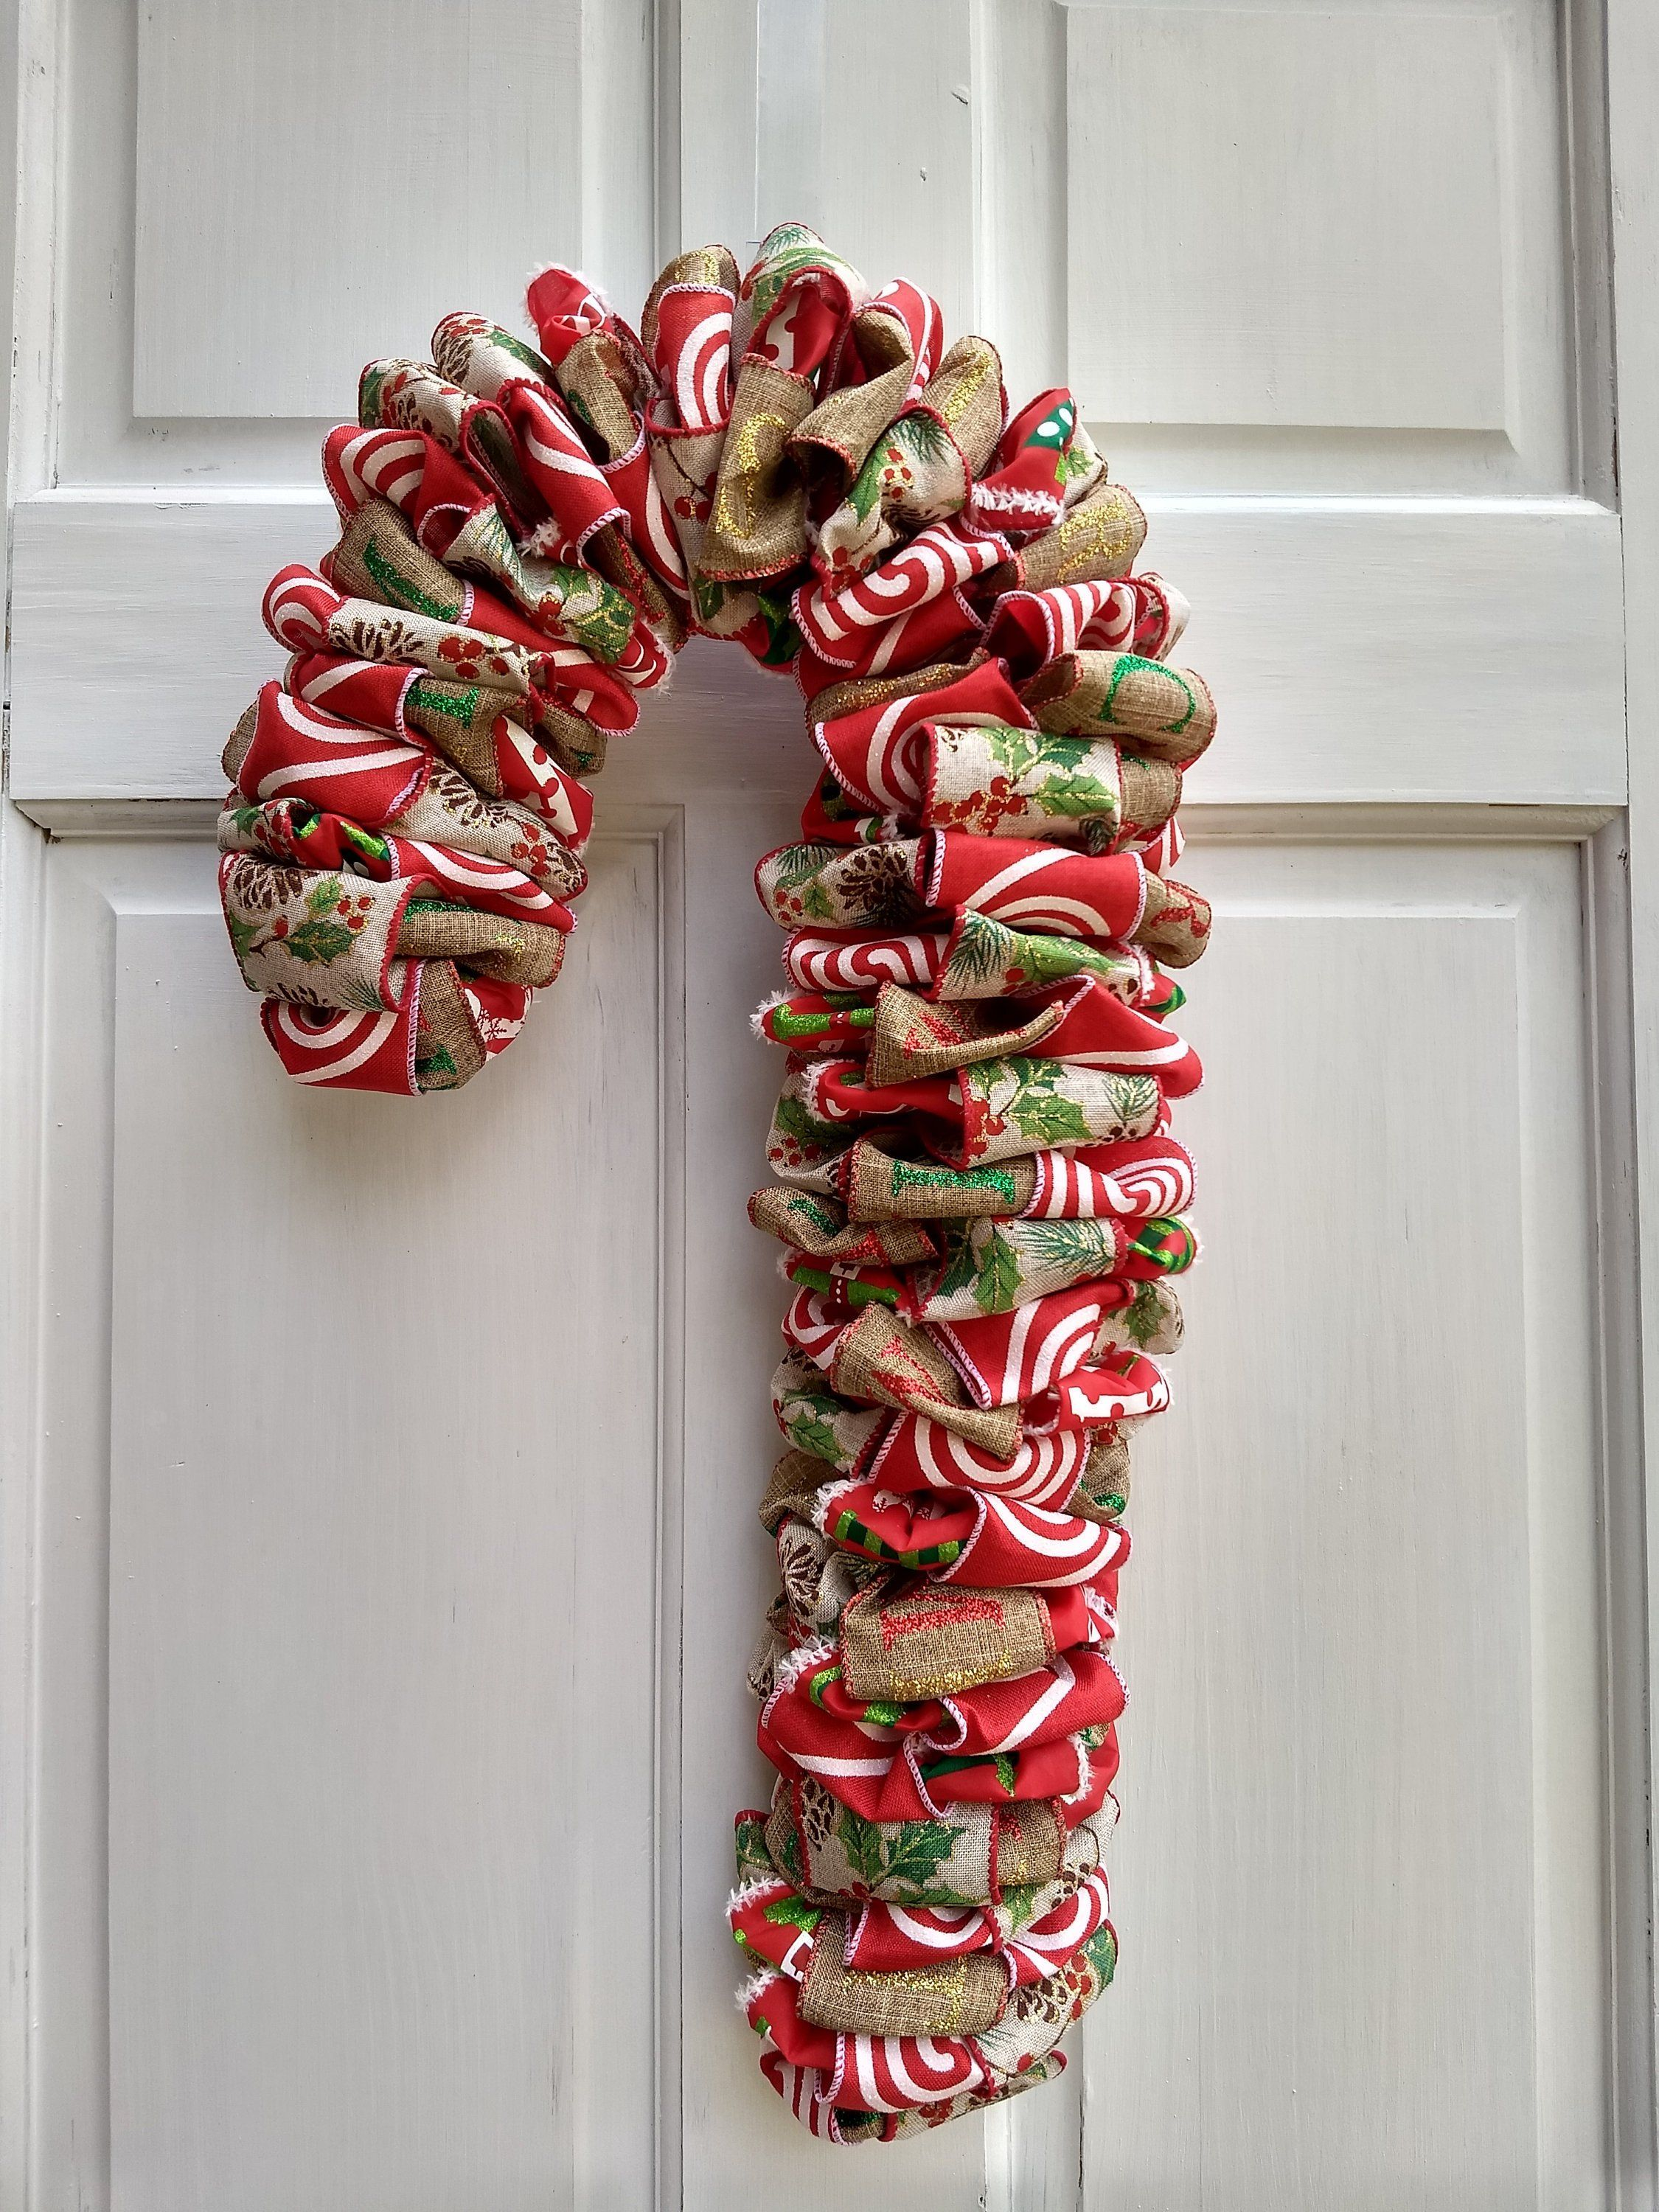 Candy Cane Decor Christmas Decor Front Door Decor Xmas Decoration Candy Cane Hanger Christmas Wreaths Diy Christmas Wreaths Diy Christmas Decorations Easy